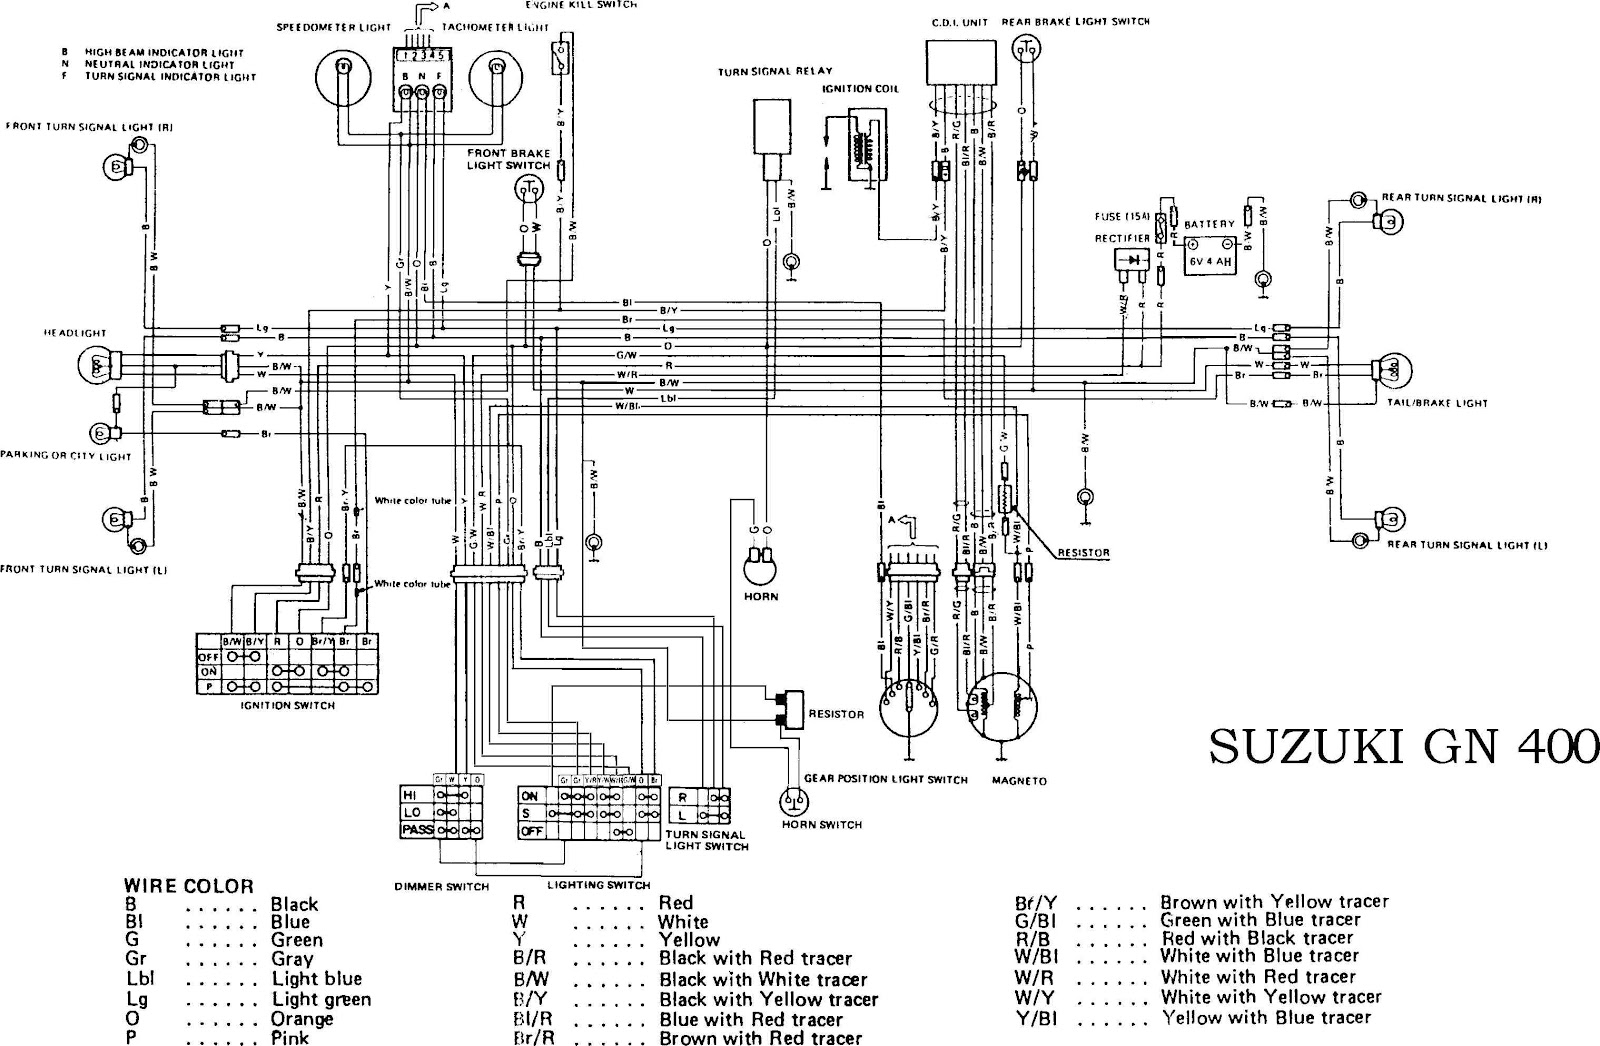 Suzuki Gsr Wiring Diagram from 3.bp.blogspot.com